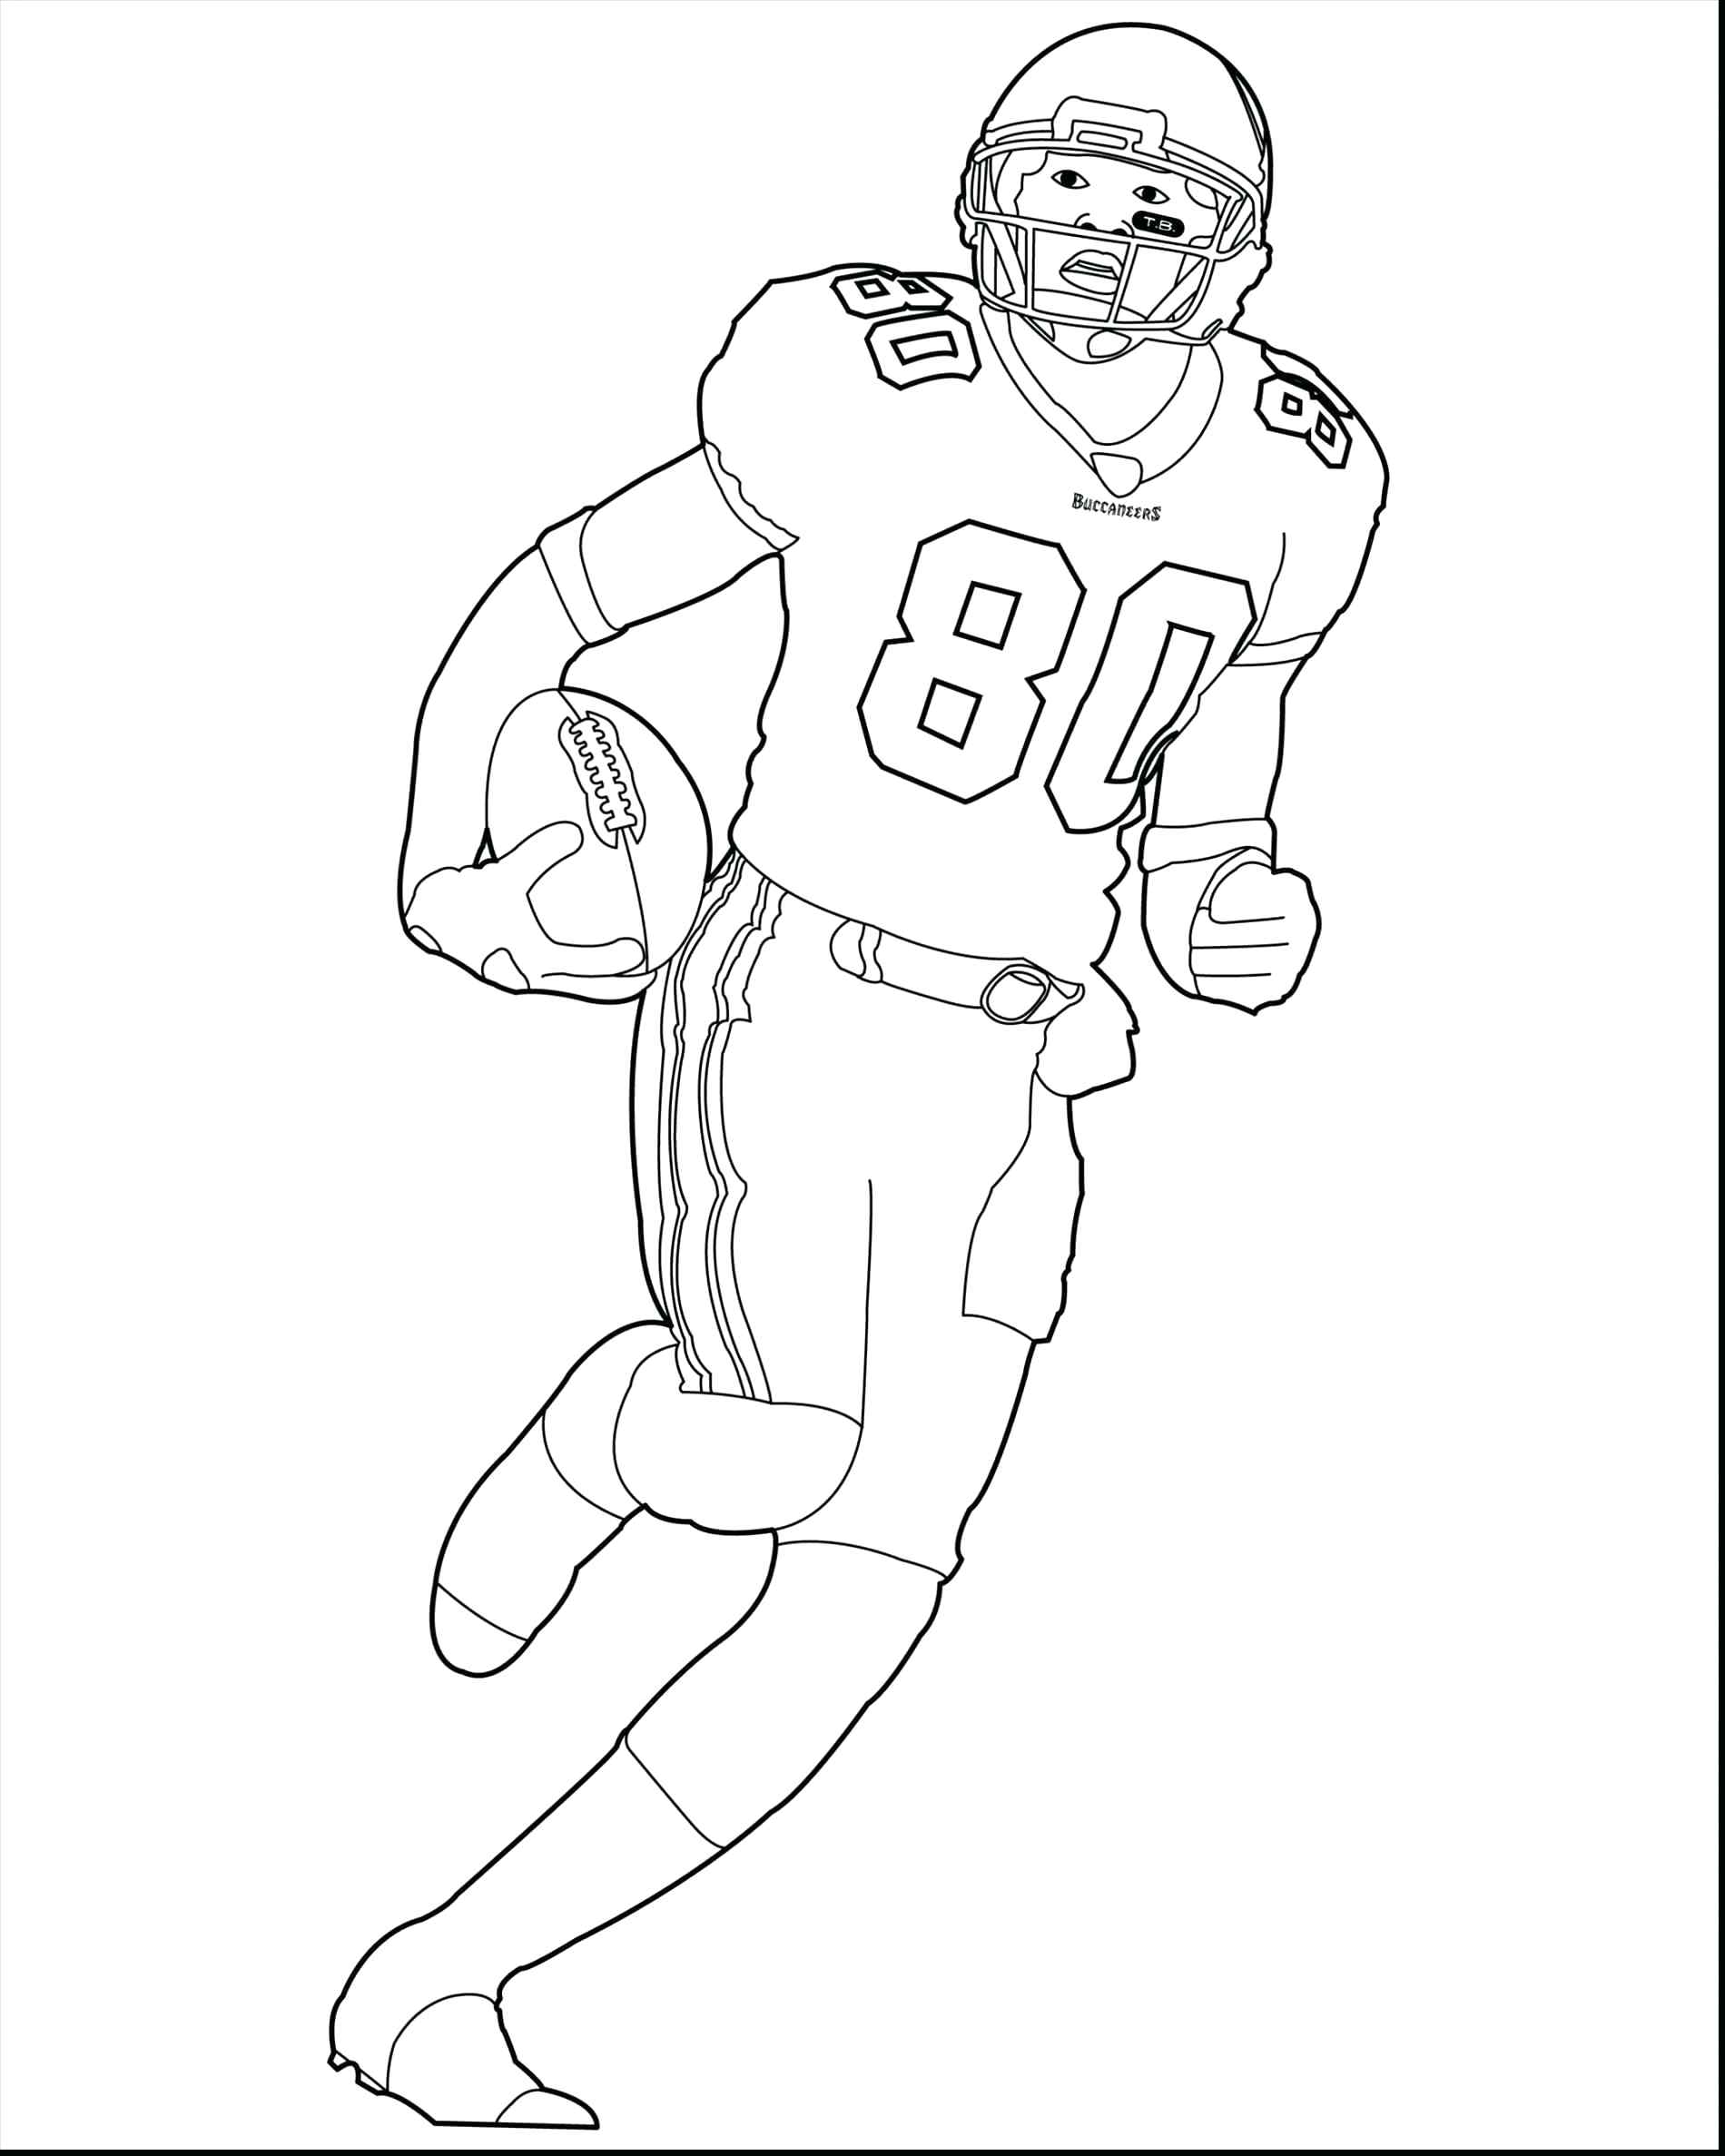 Dallas Cowboys Logo Drawing at GetDrawings | Free download